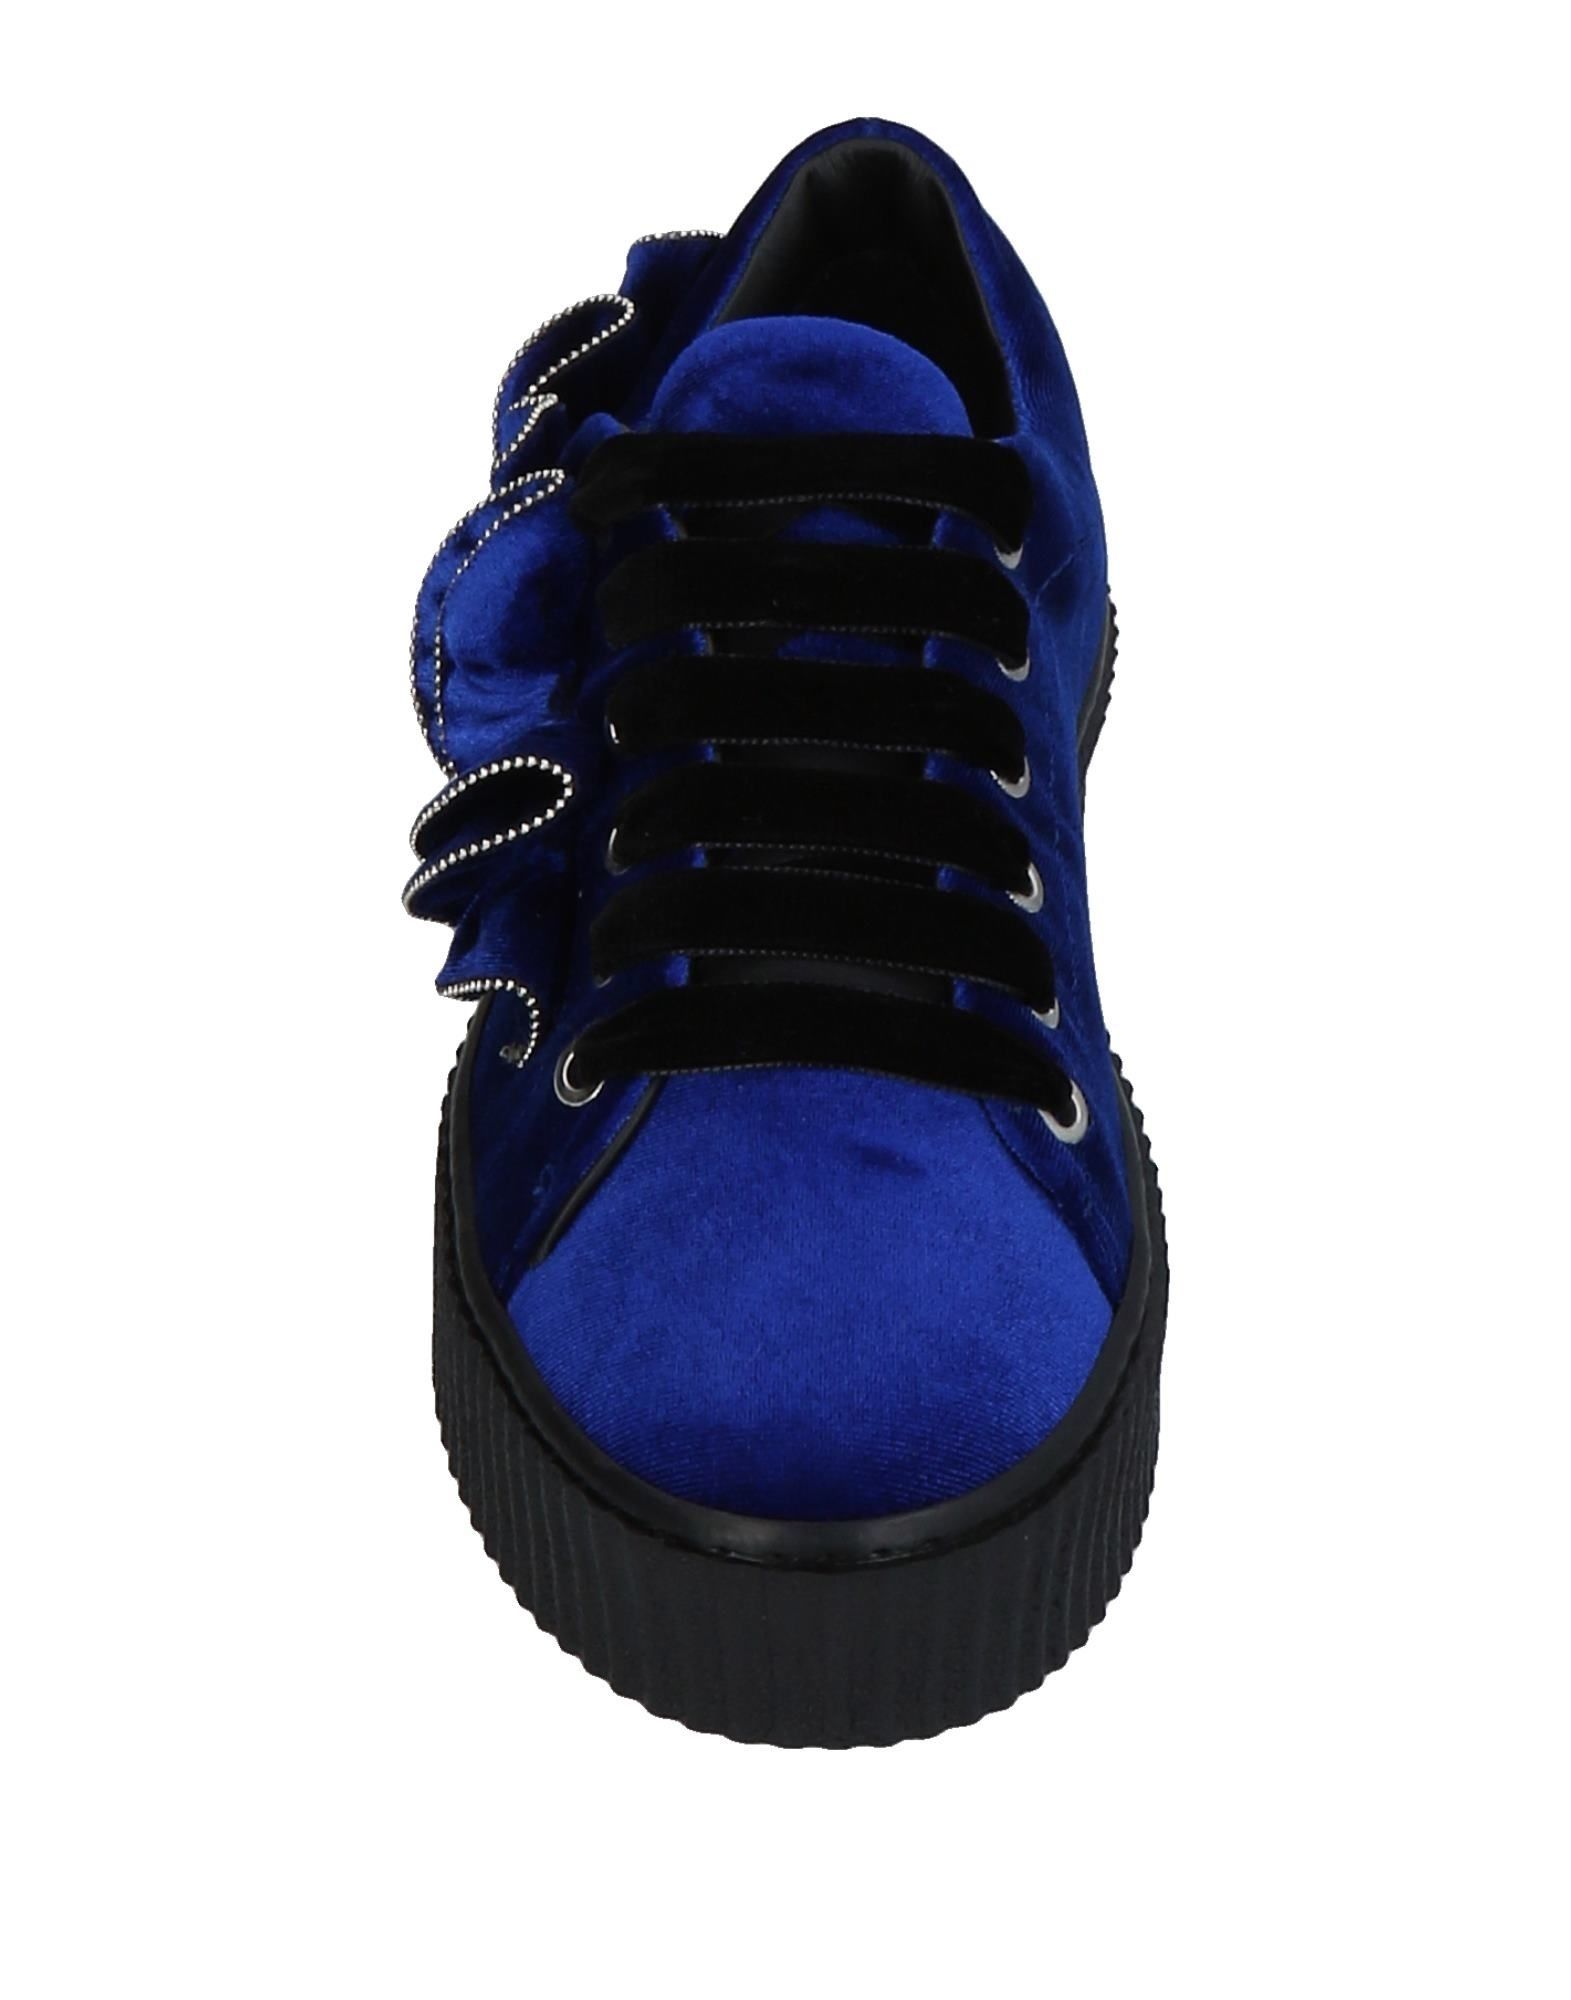 Pinko Dark Blue Velvet Sneakers